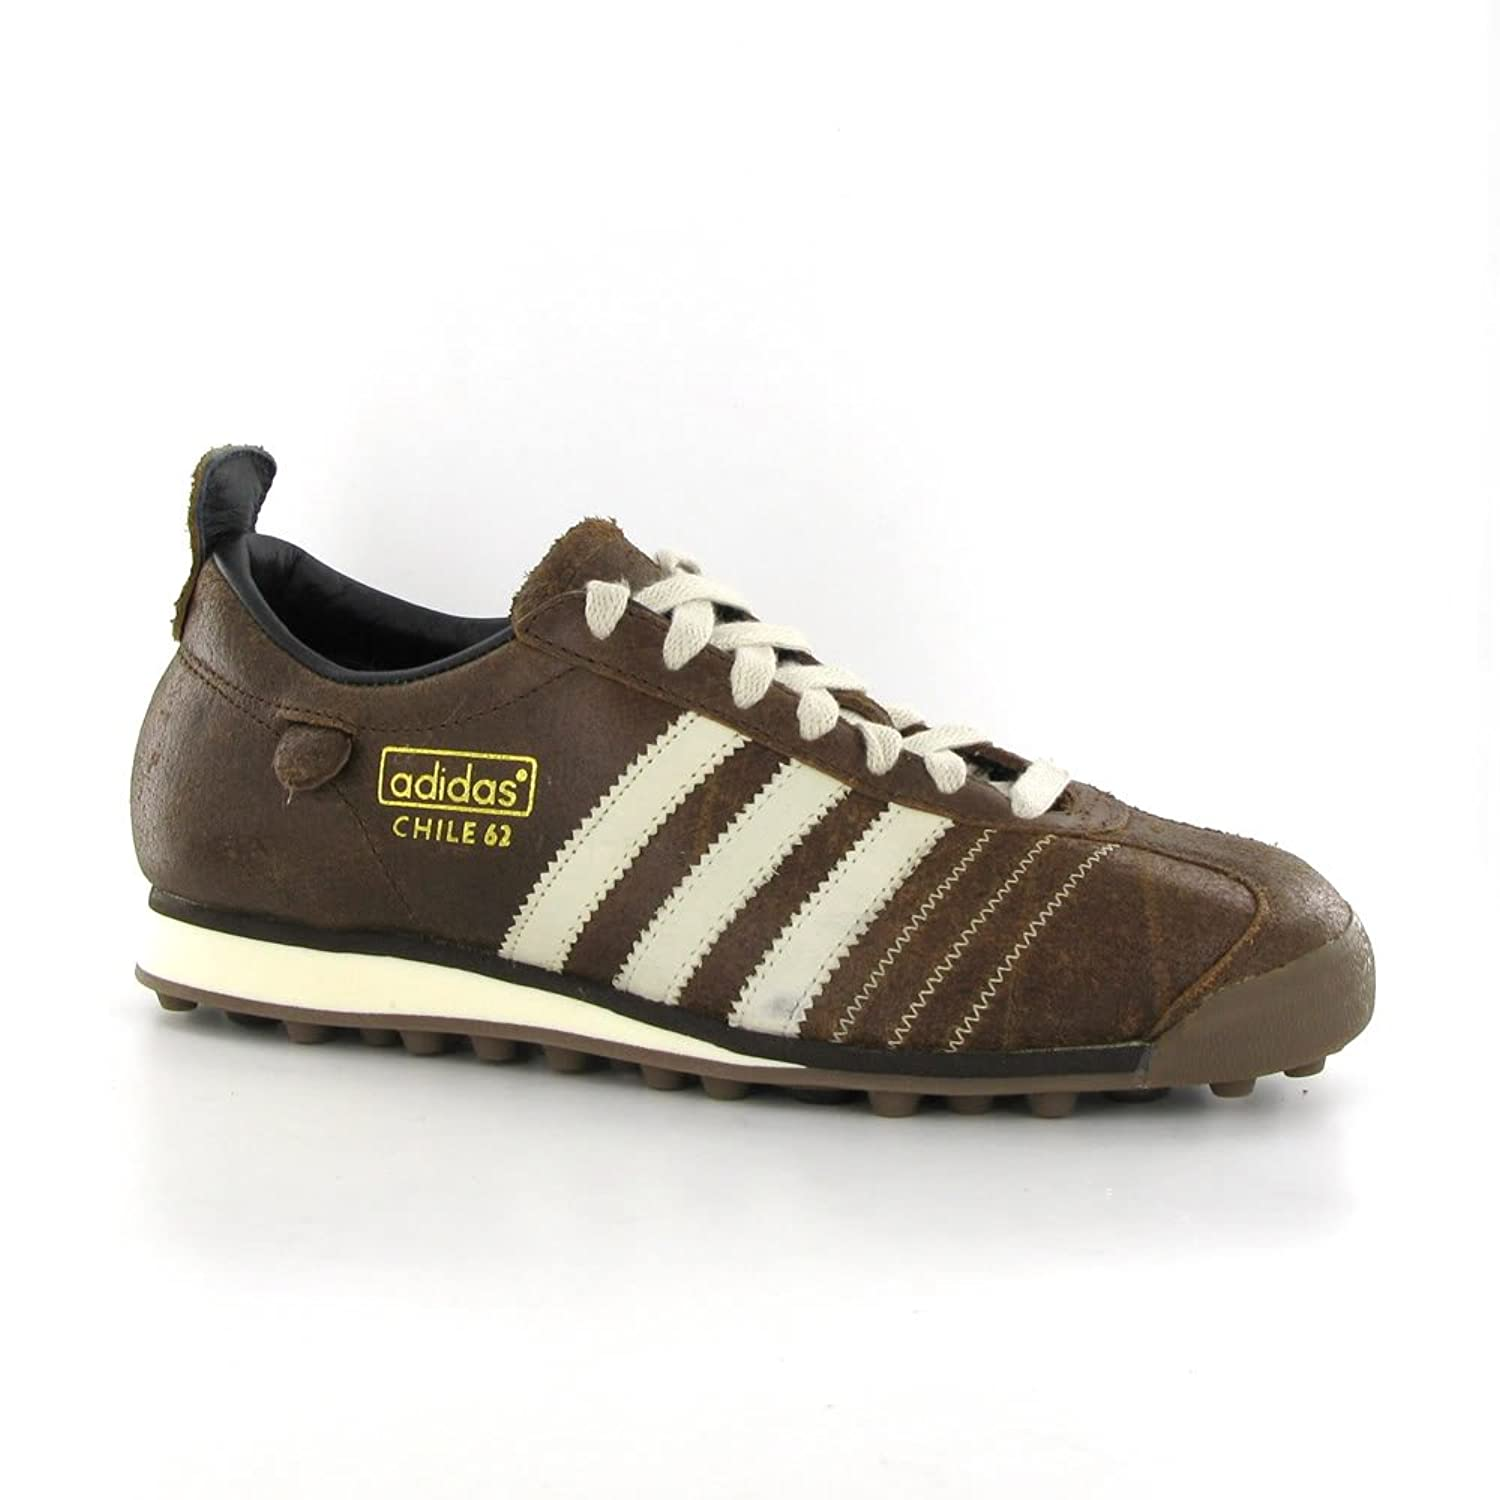 Adidas Chile 62 Coffee Leather Mens Trainers Size 8 UK: Amazon.co.uk: Shoes  & Bags